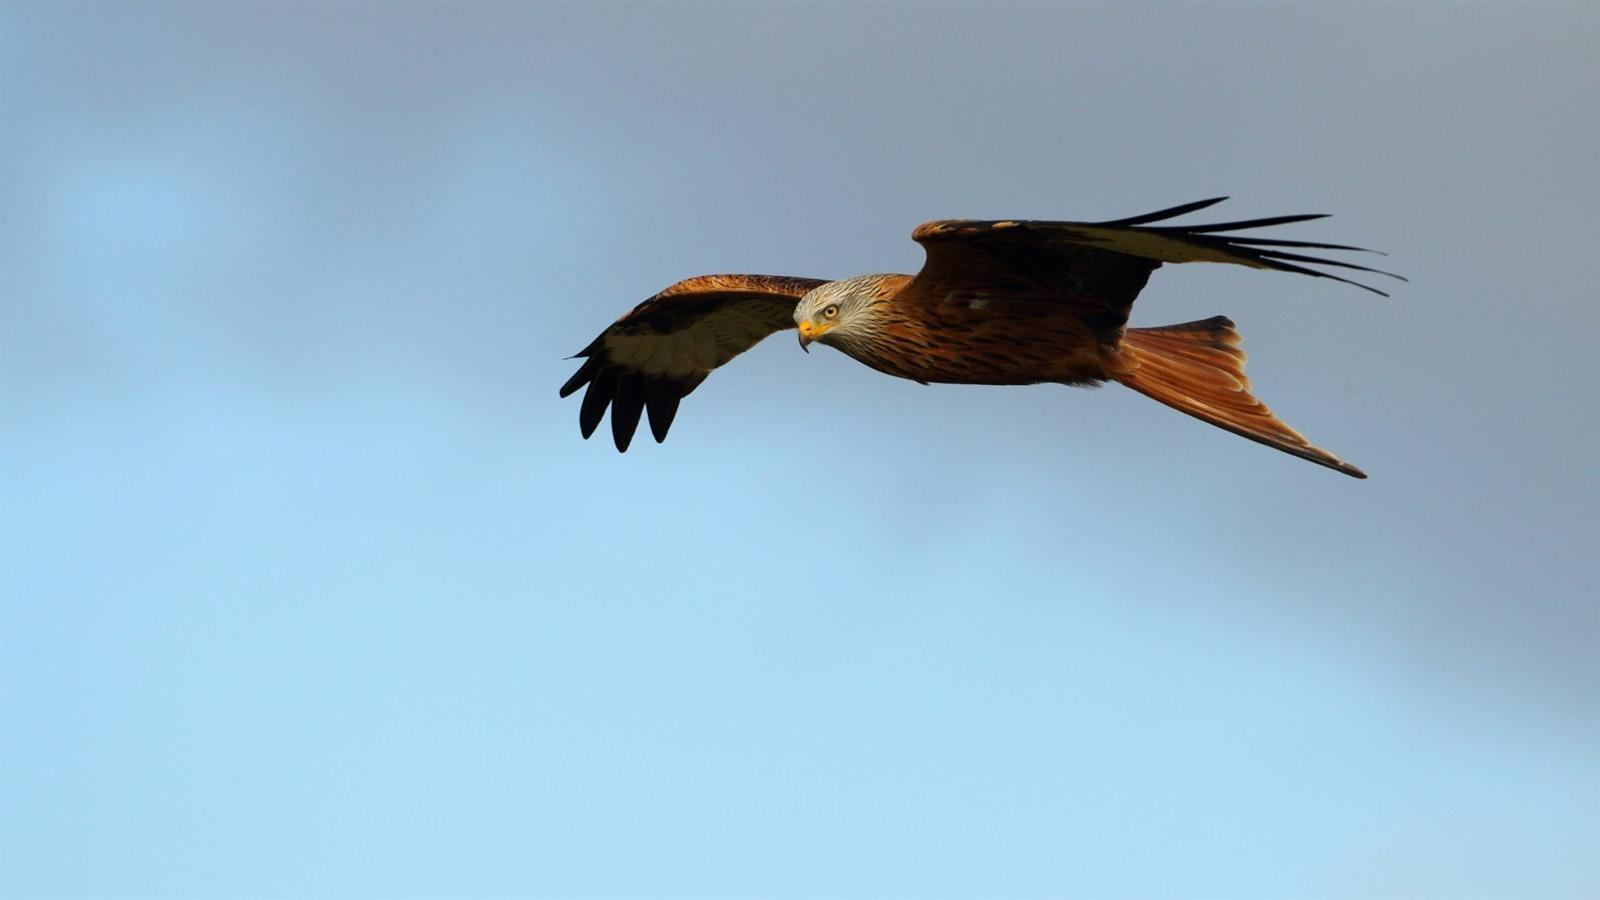 1600x900 Red Bird Kite in Sky Wallpaper